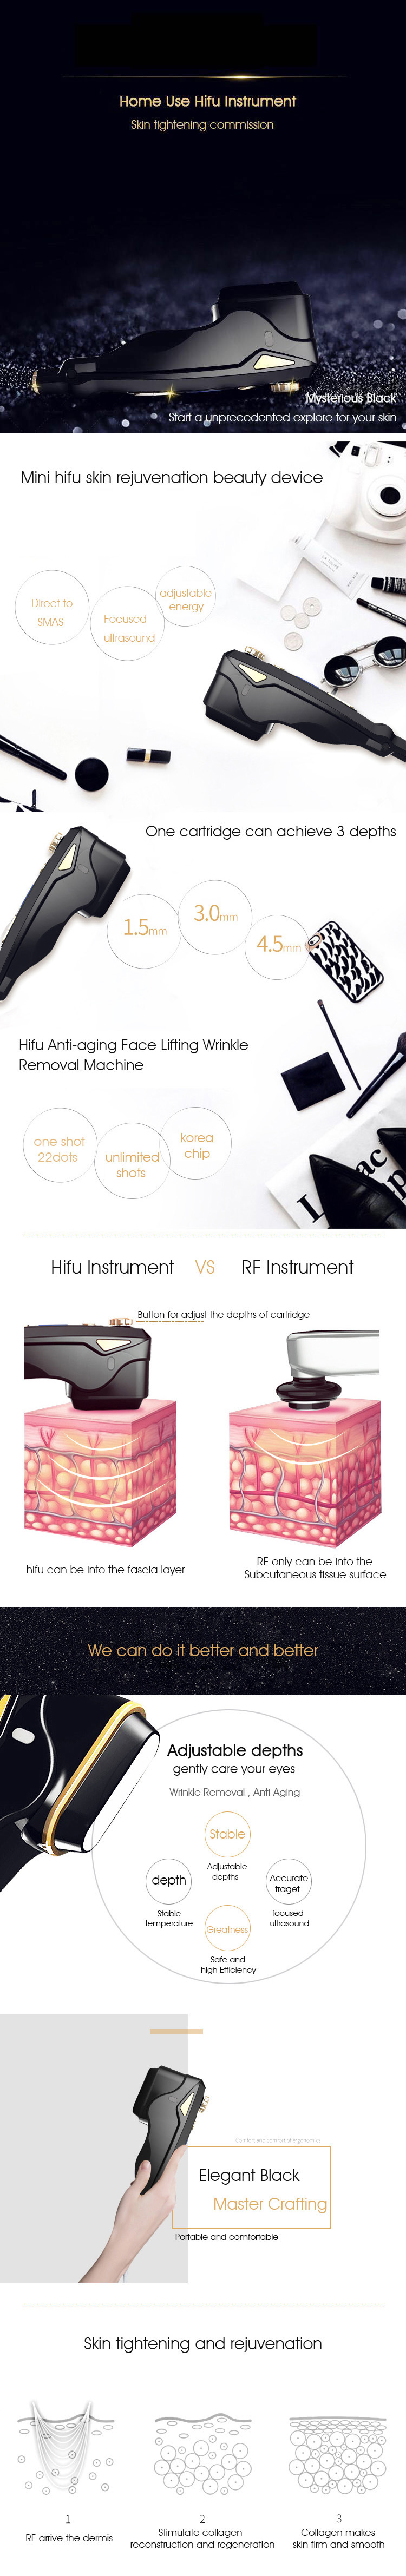 2018 New Cartridges Hifu Mini Portable Face Lift Skin Tightening Beauty Machine